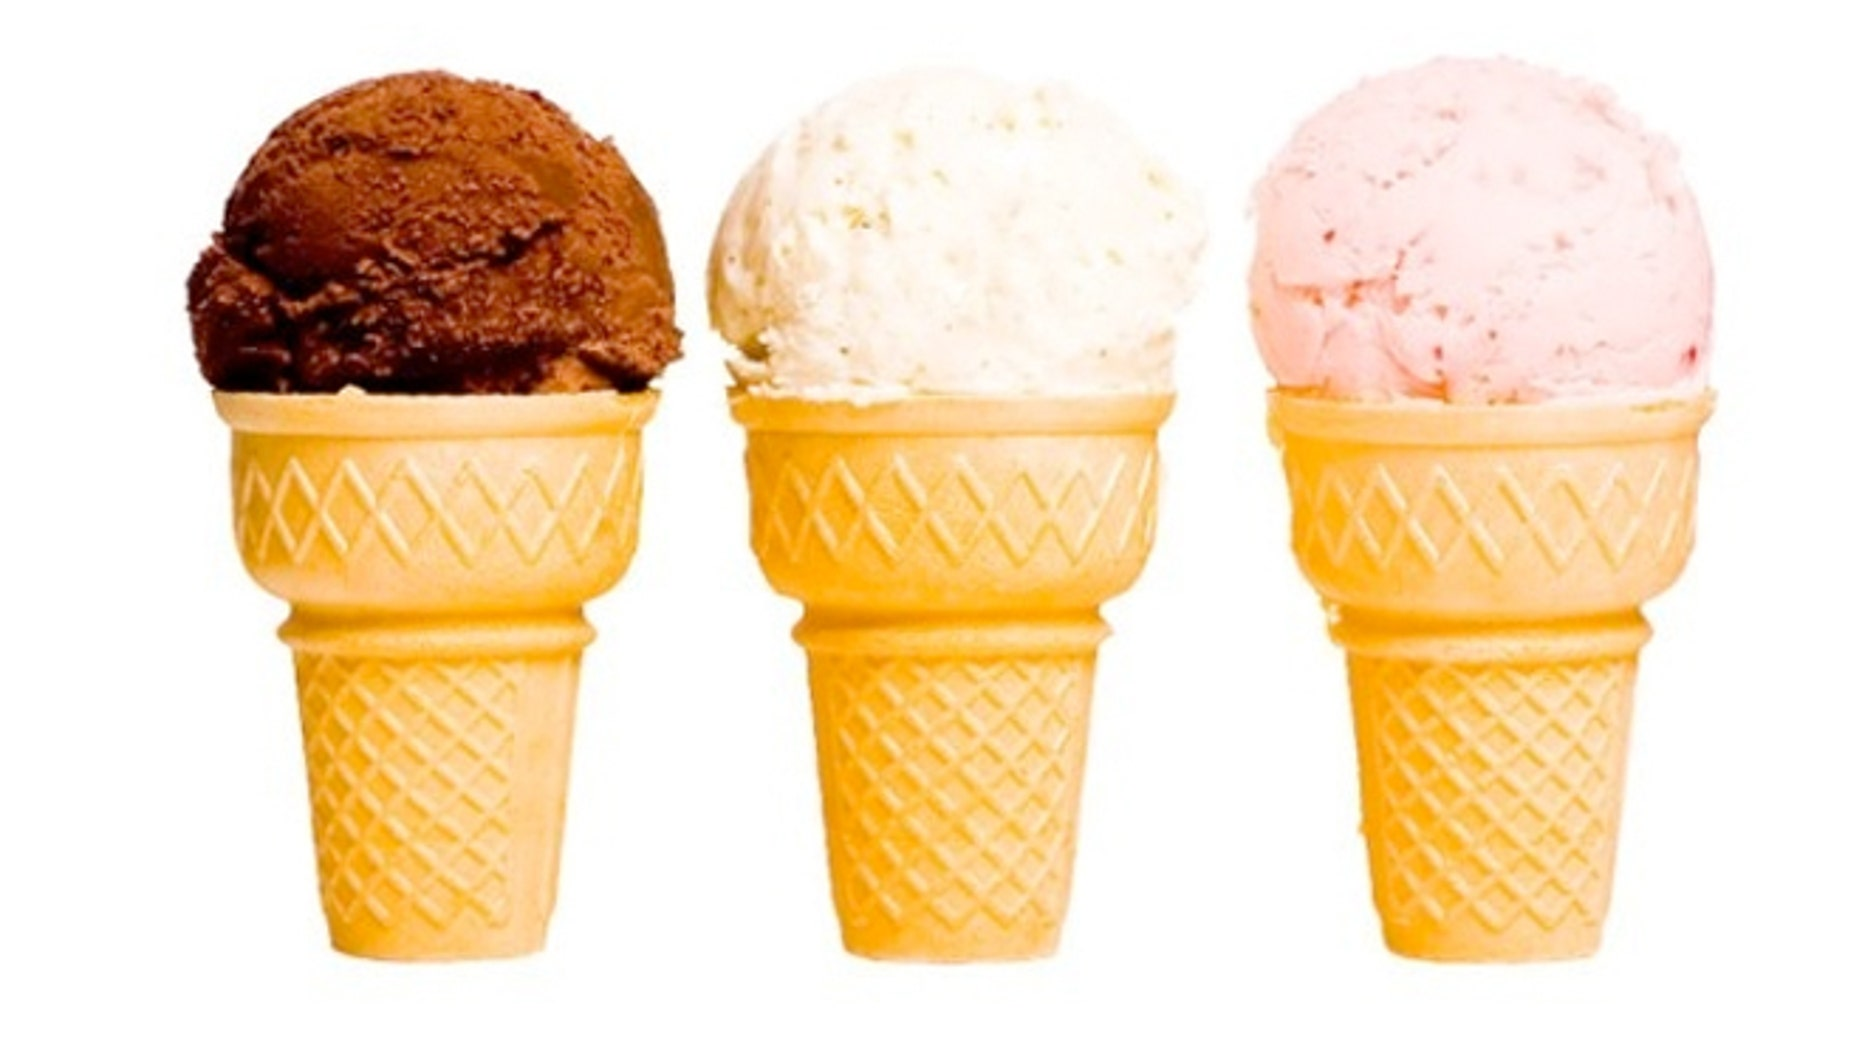 What's the Scoop? ice cream parlor donates to a different organization each month.